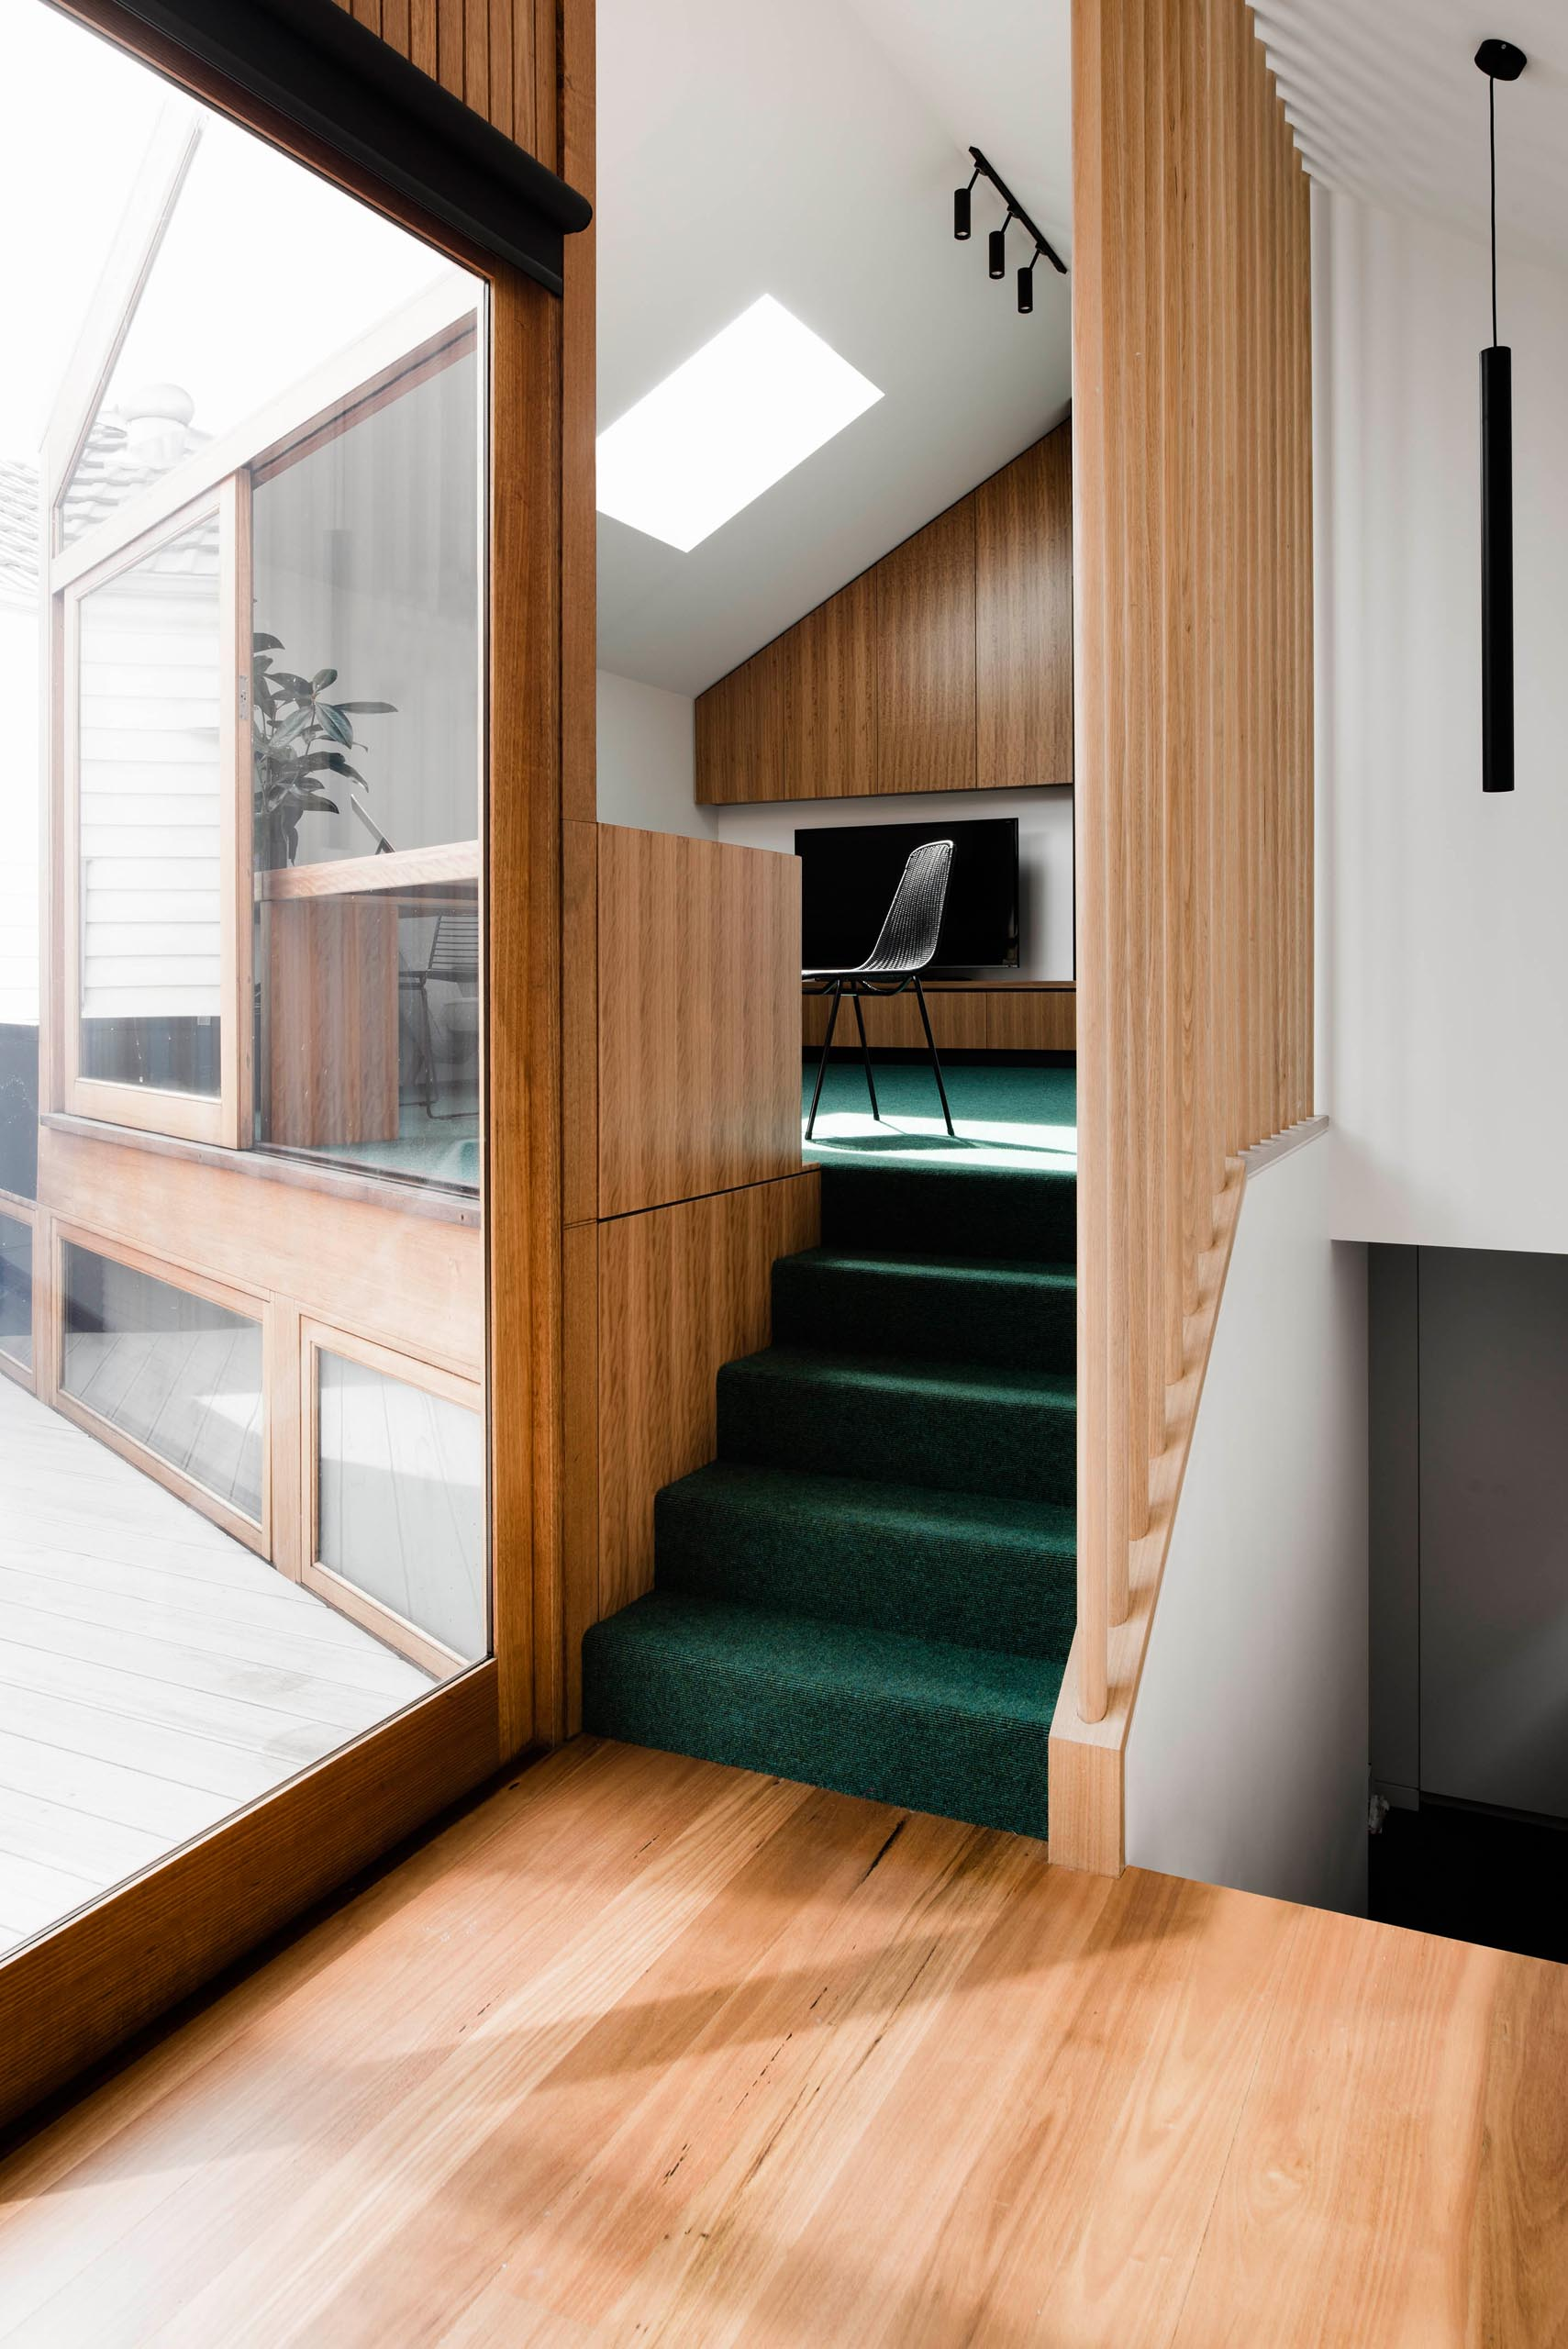 A colorful surprise is included in this modern home in the form of a deep green carpet that travels up the stairs and into the home office.